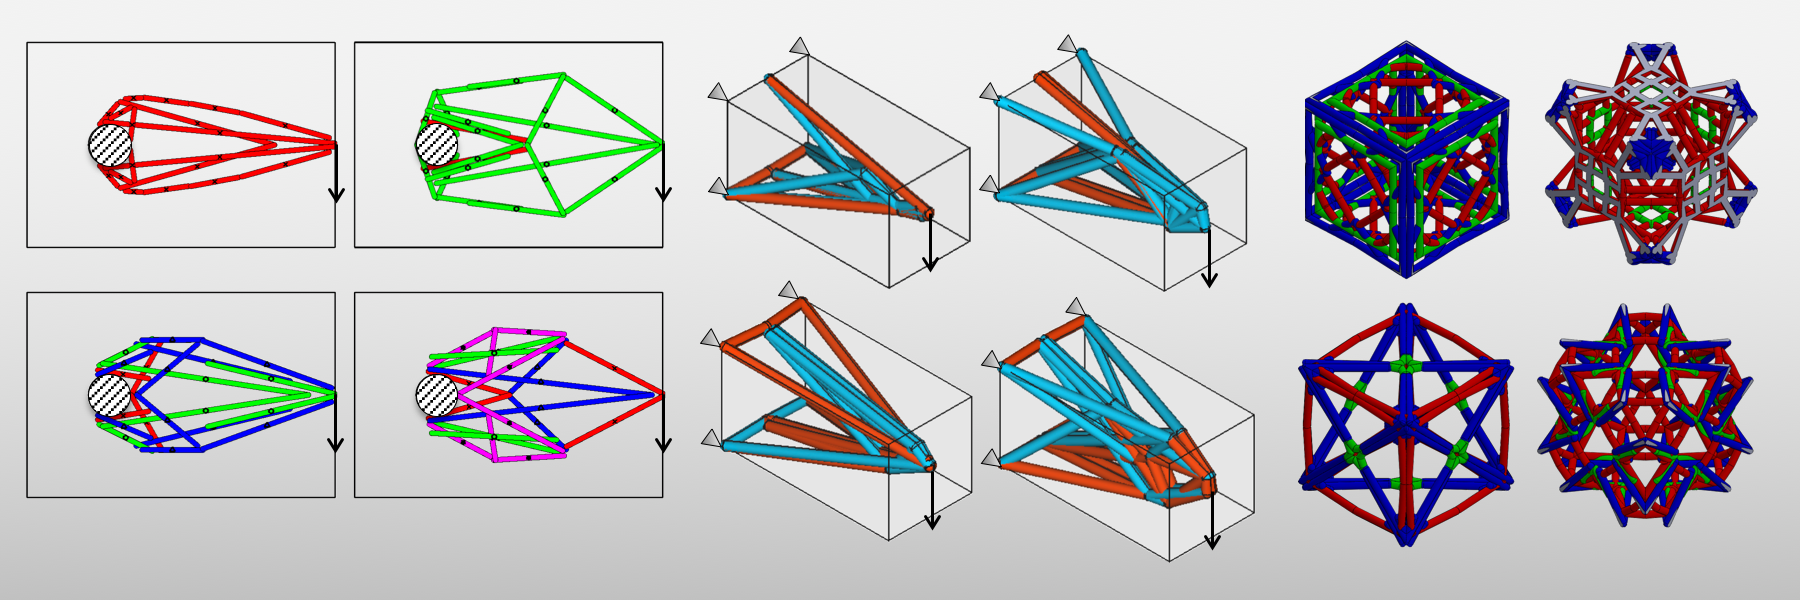 This slide shows examples of topology optimization of 2D and 3D frames, and of lattice structures made of multiple materials.